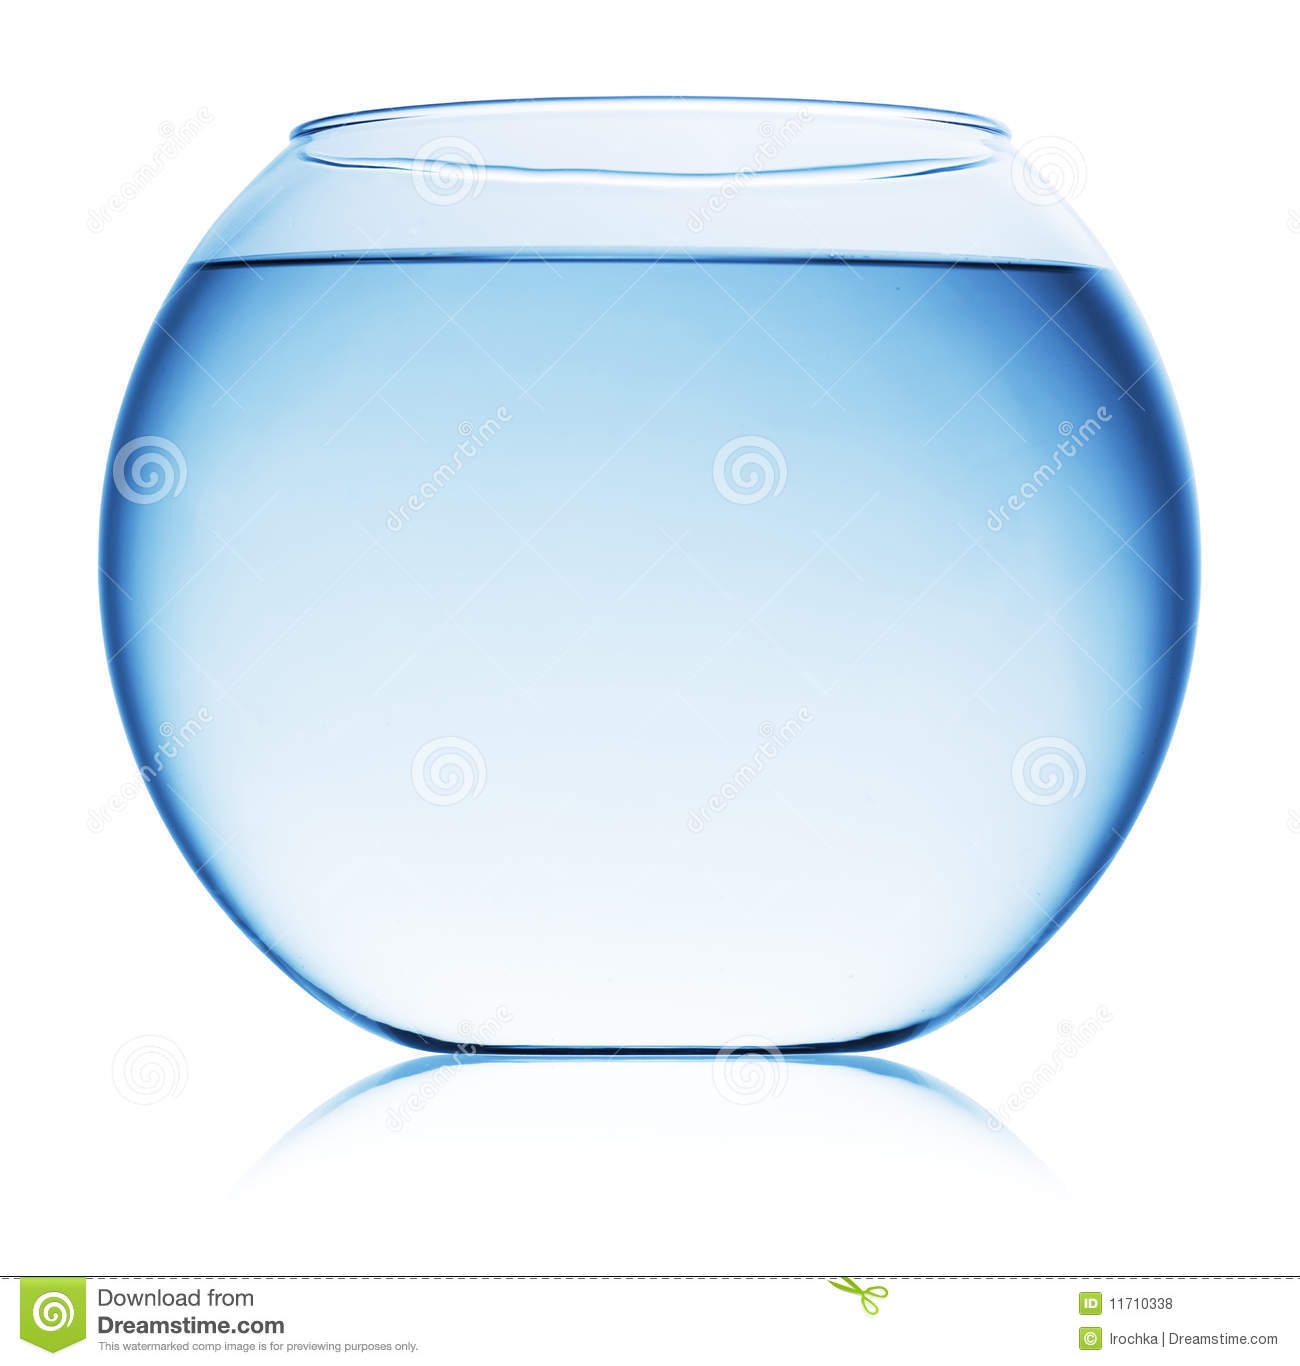 how to prepare a fish bowl